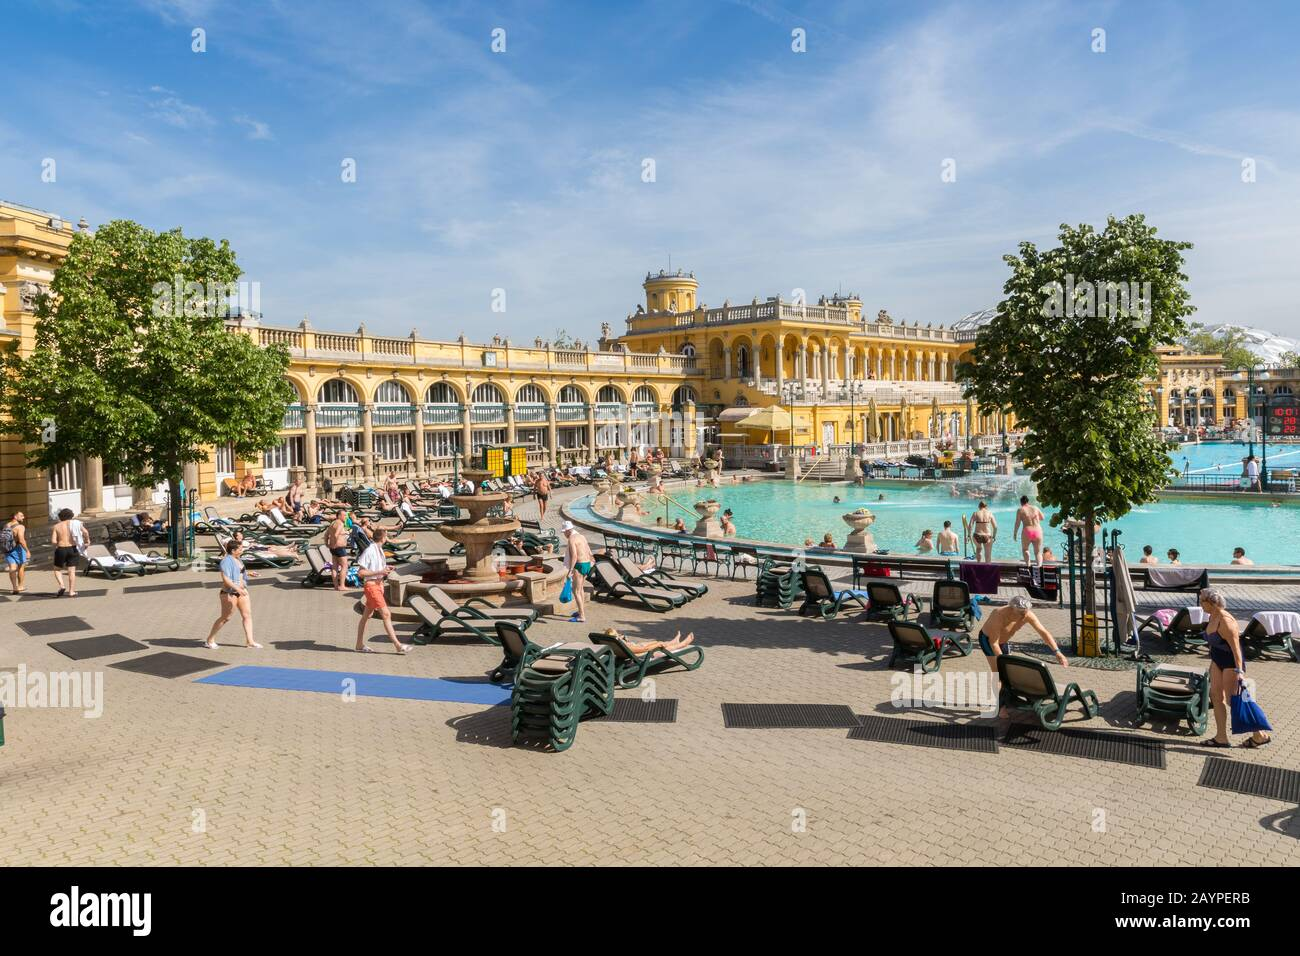 Budapest, Hungary - 25 April 2019: The oldest Szechenyi medicinal bath is the largest medicinal bath in Europe. Stock Photo